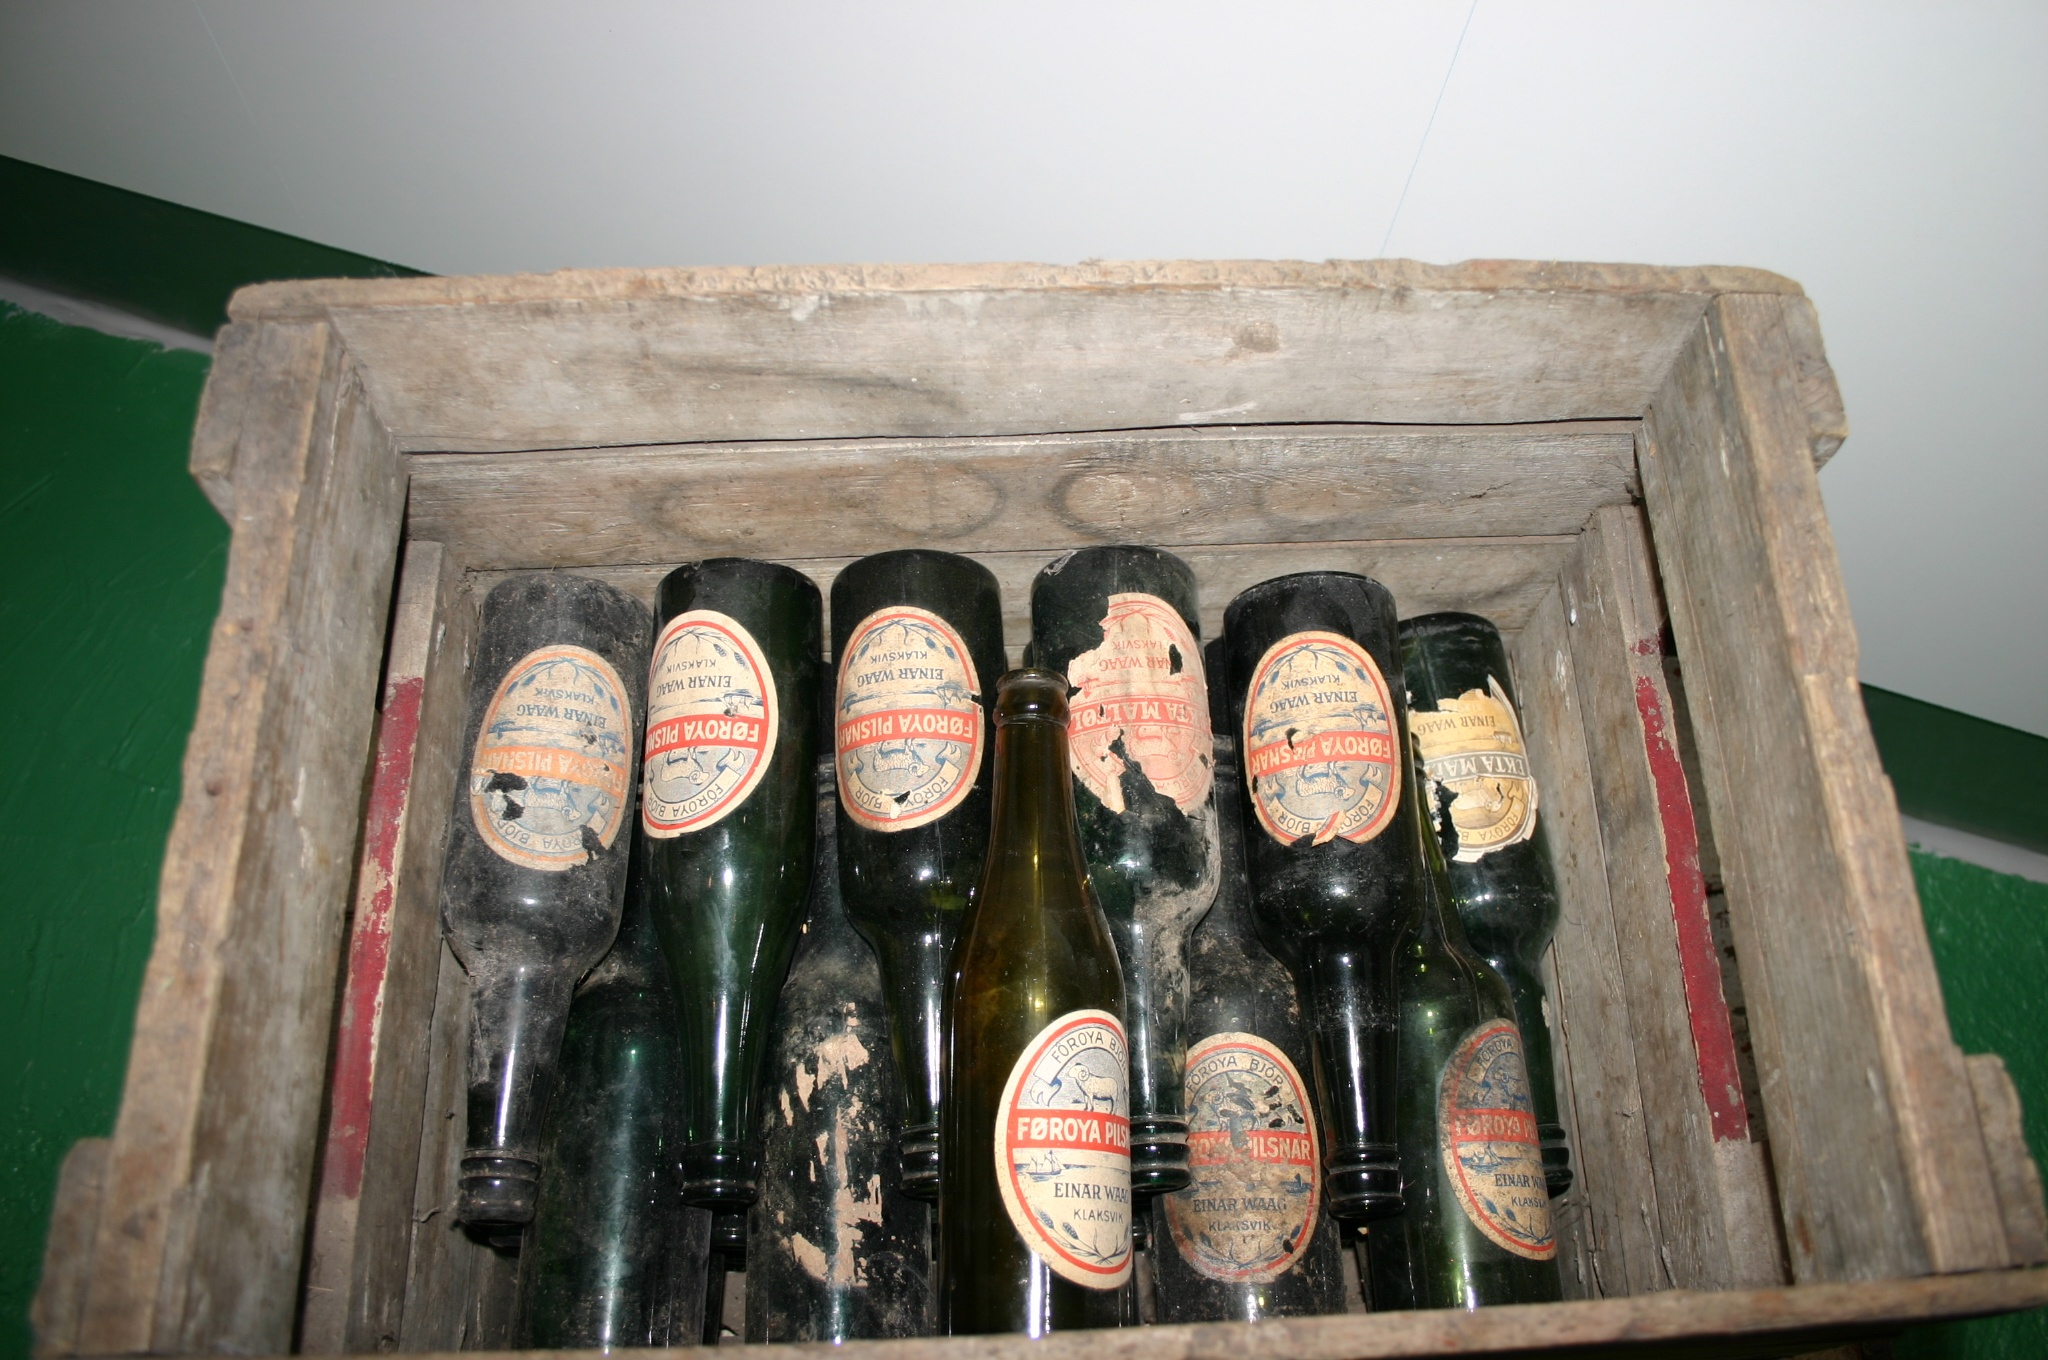 dating old pint bottle (unopened), pantry, fridge past date, past date canned beer lasts for, 6-9  months, 6 months-2 years bottled beer lasts for, 6-9 months.